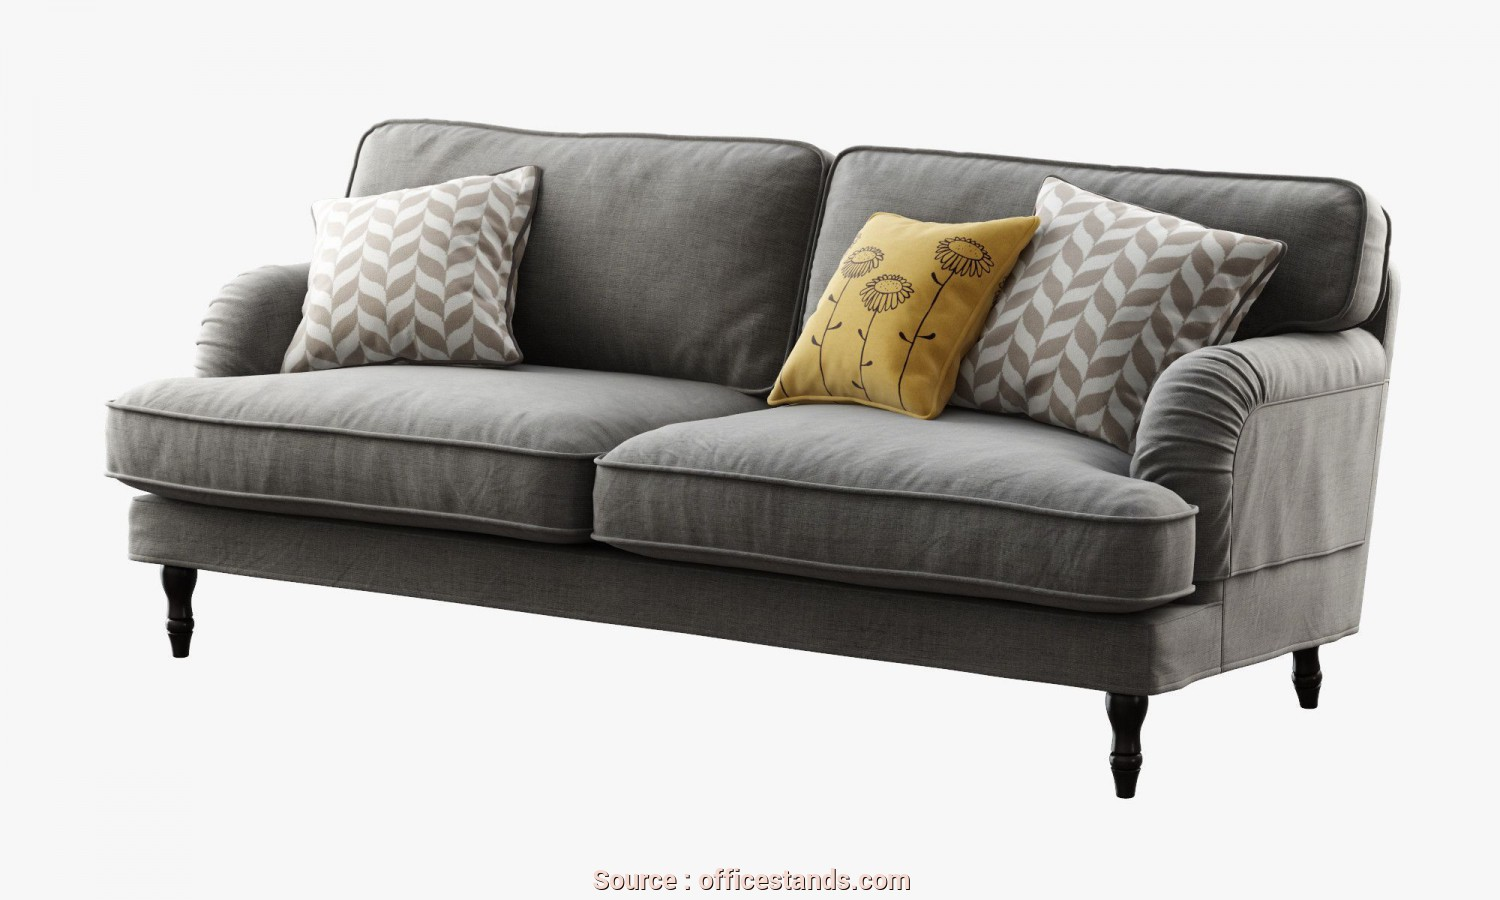 Ikea Backabro Reviews, A Buon Mercato Best Ikea Sofa Ikea Vilasund, Backabro Review Return Of